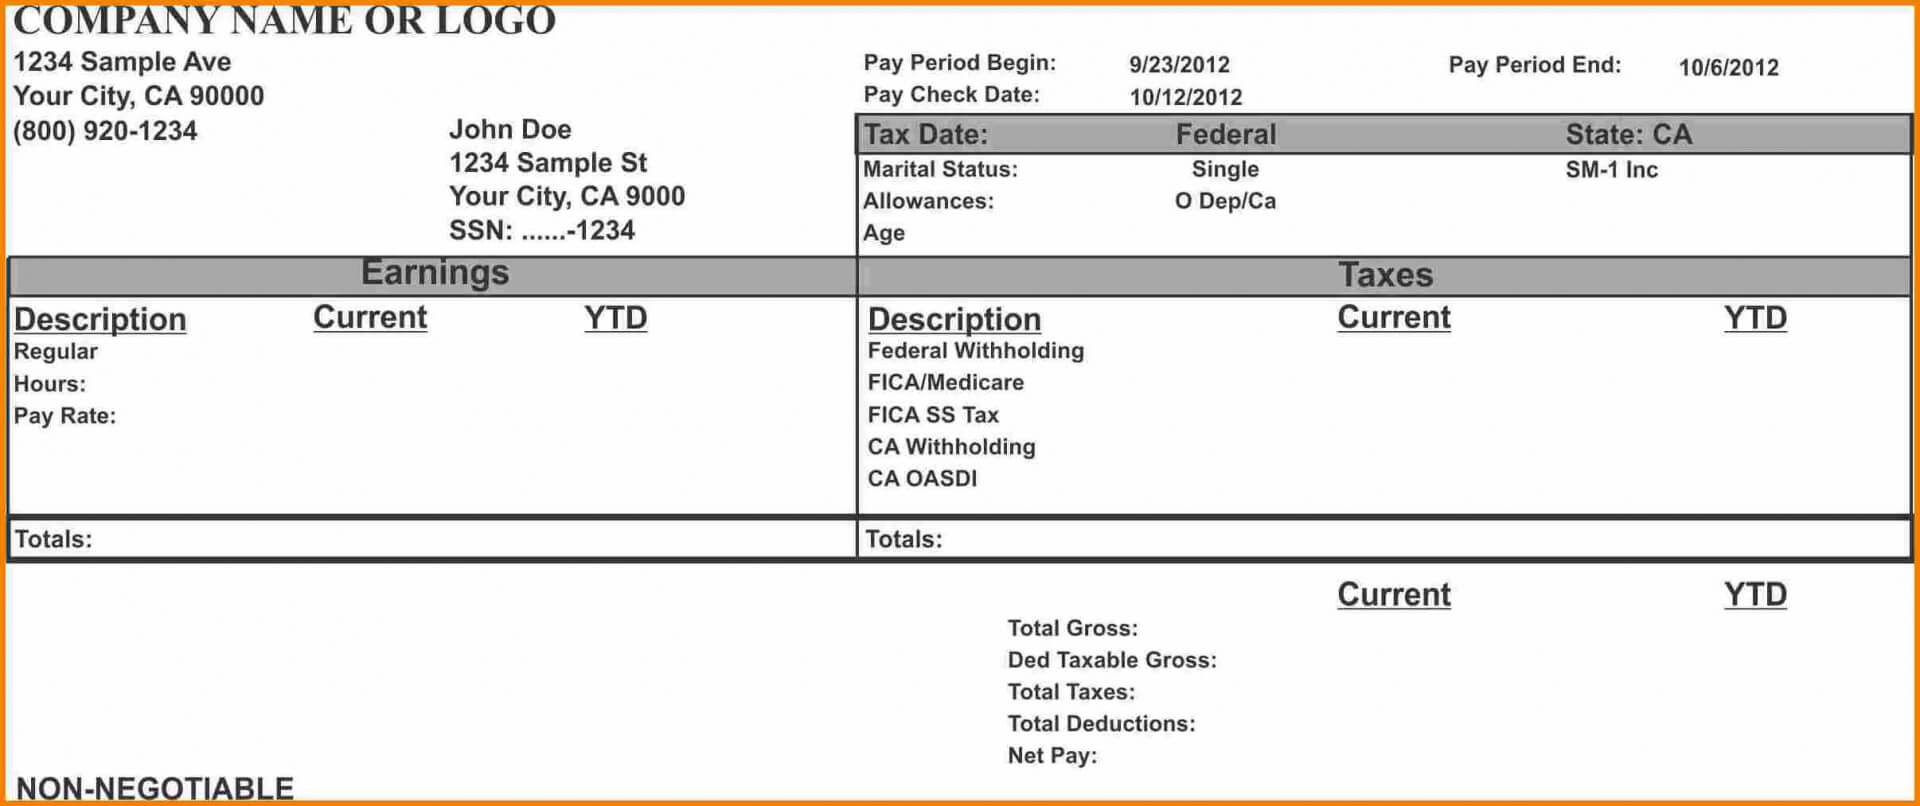 006 Free Pay Stub Template Word Unbelievable Ideas Microsoft With Blank Pay Stub Template Word